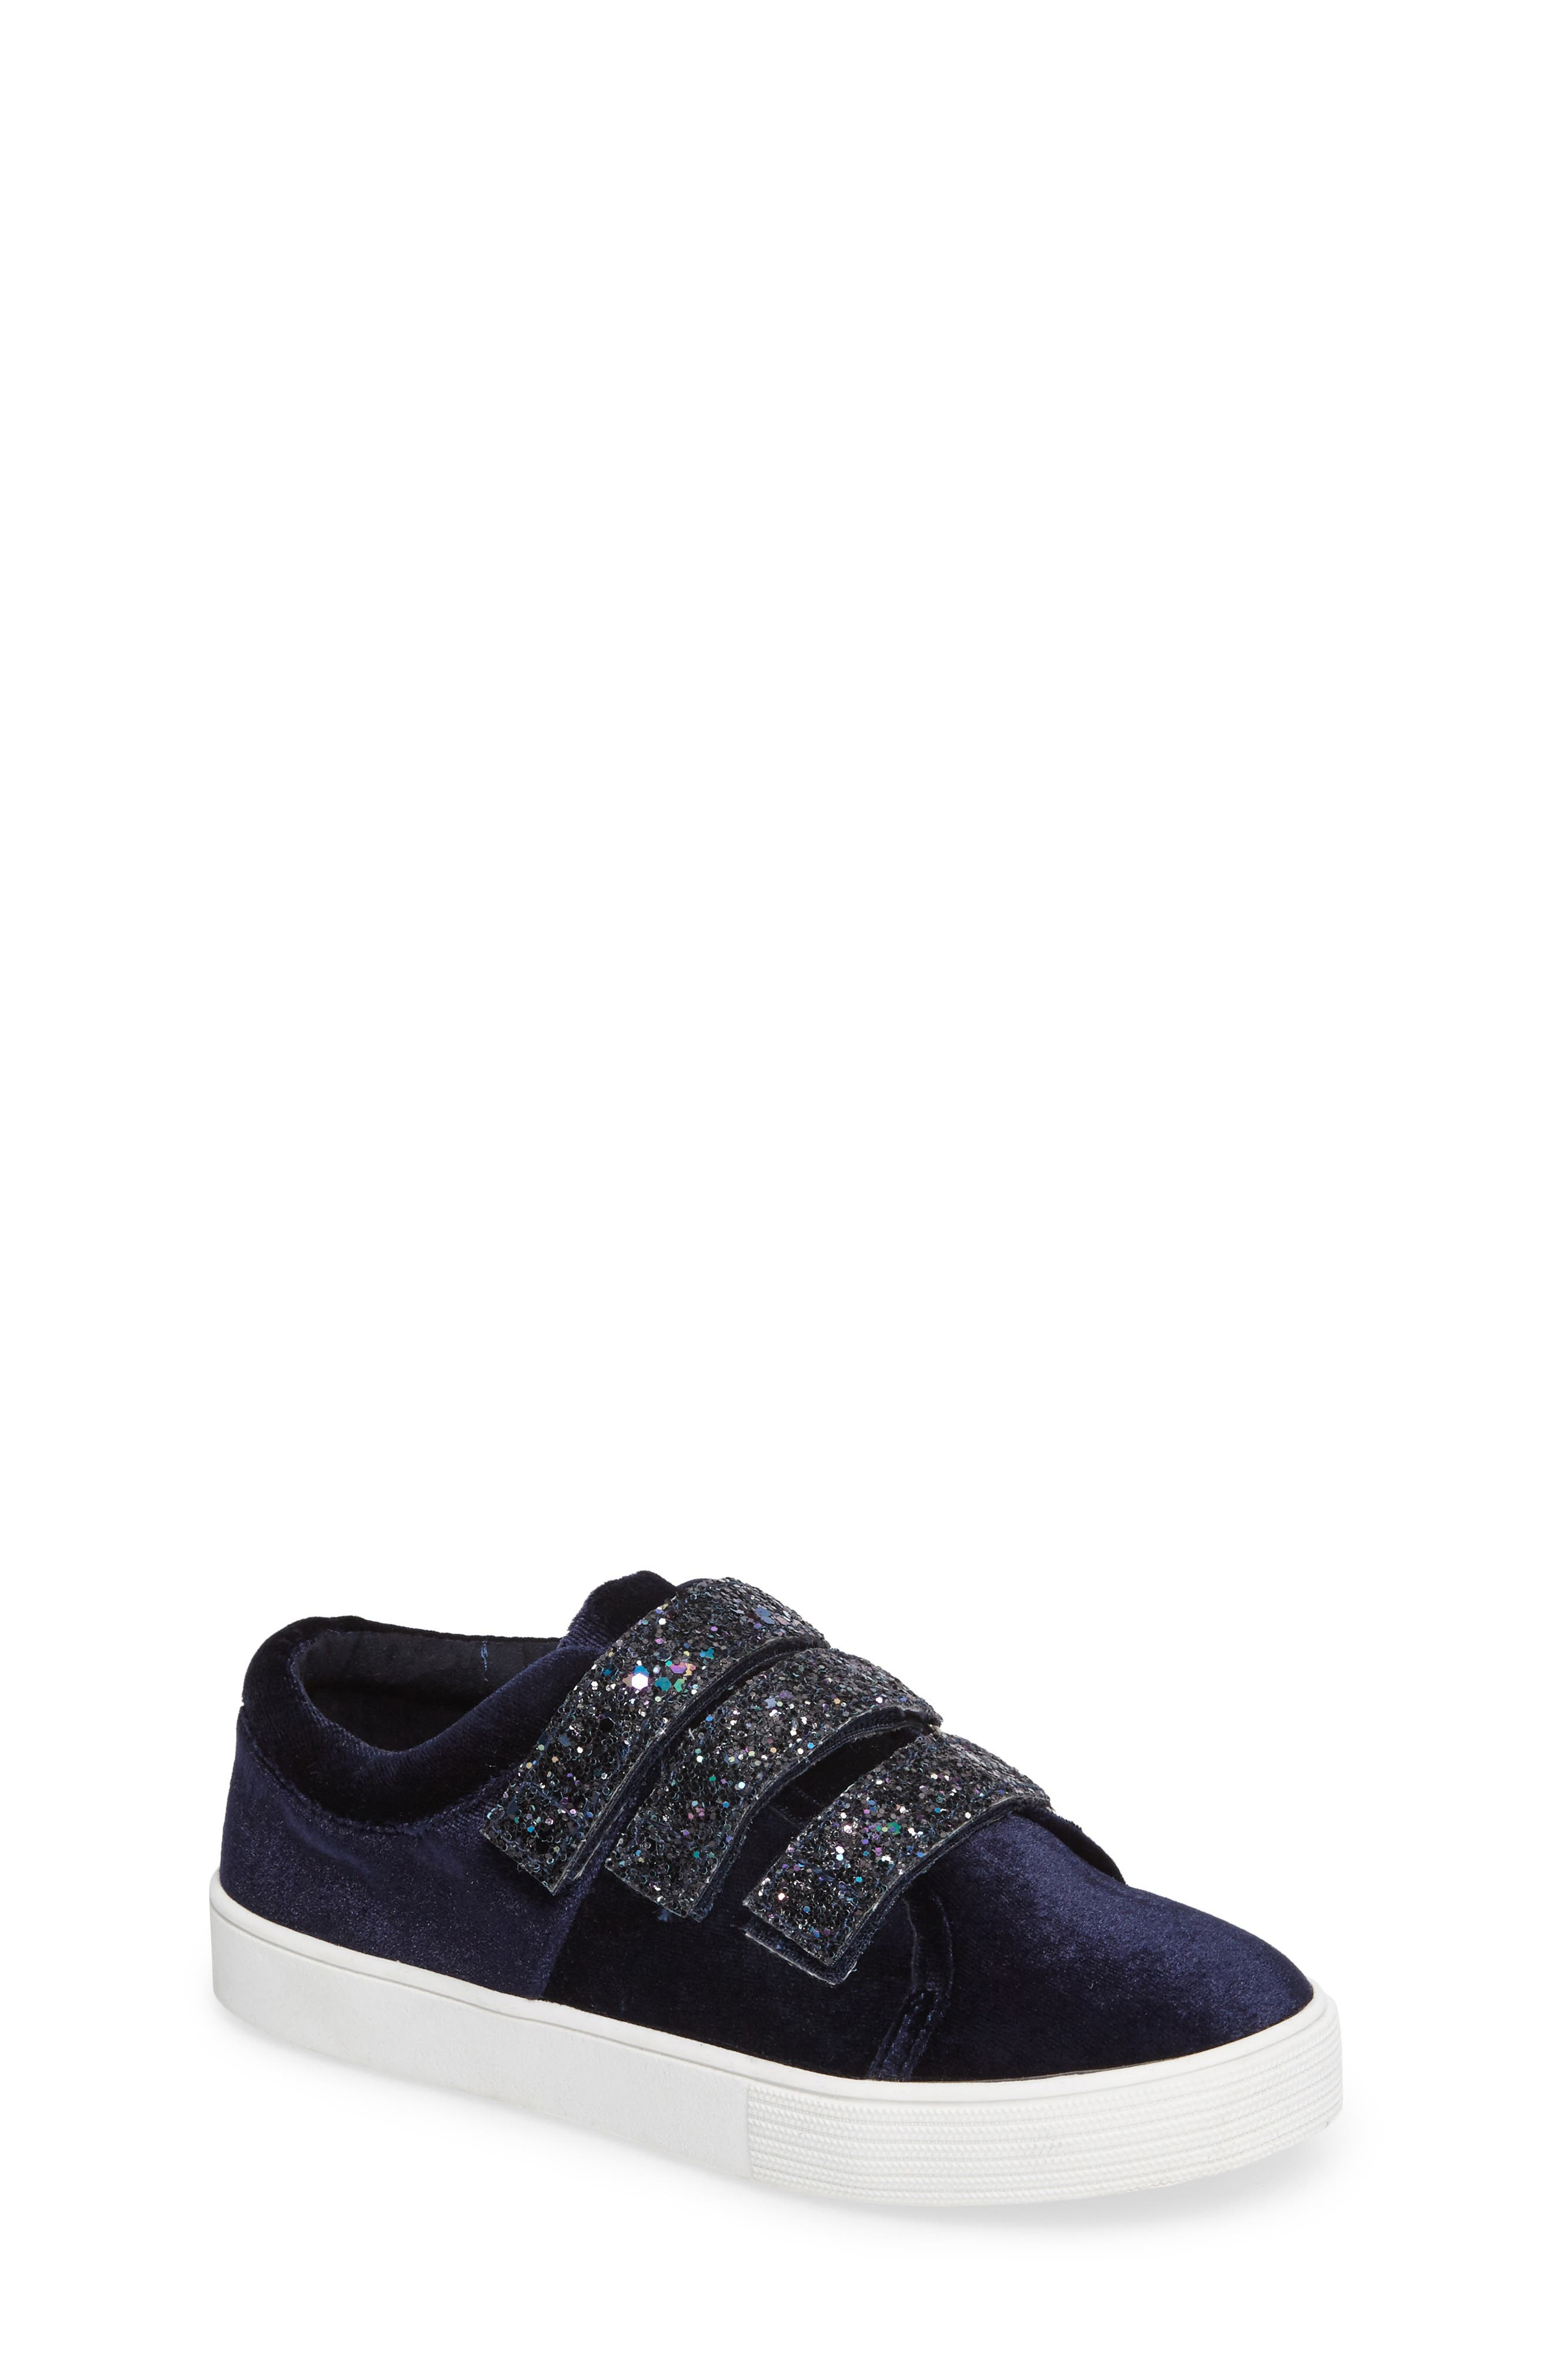 Kam Glitter Strap Sneaker,                             Main thumbnail 1, color,                             Navy Fabric